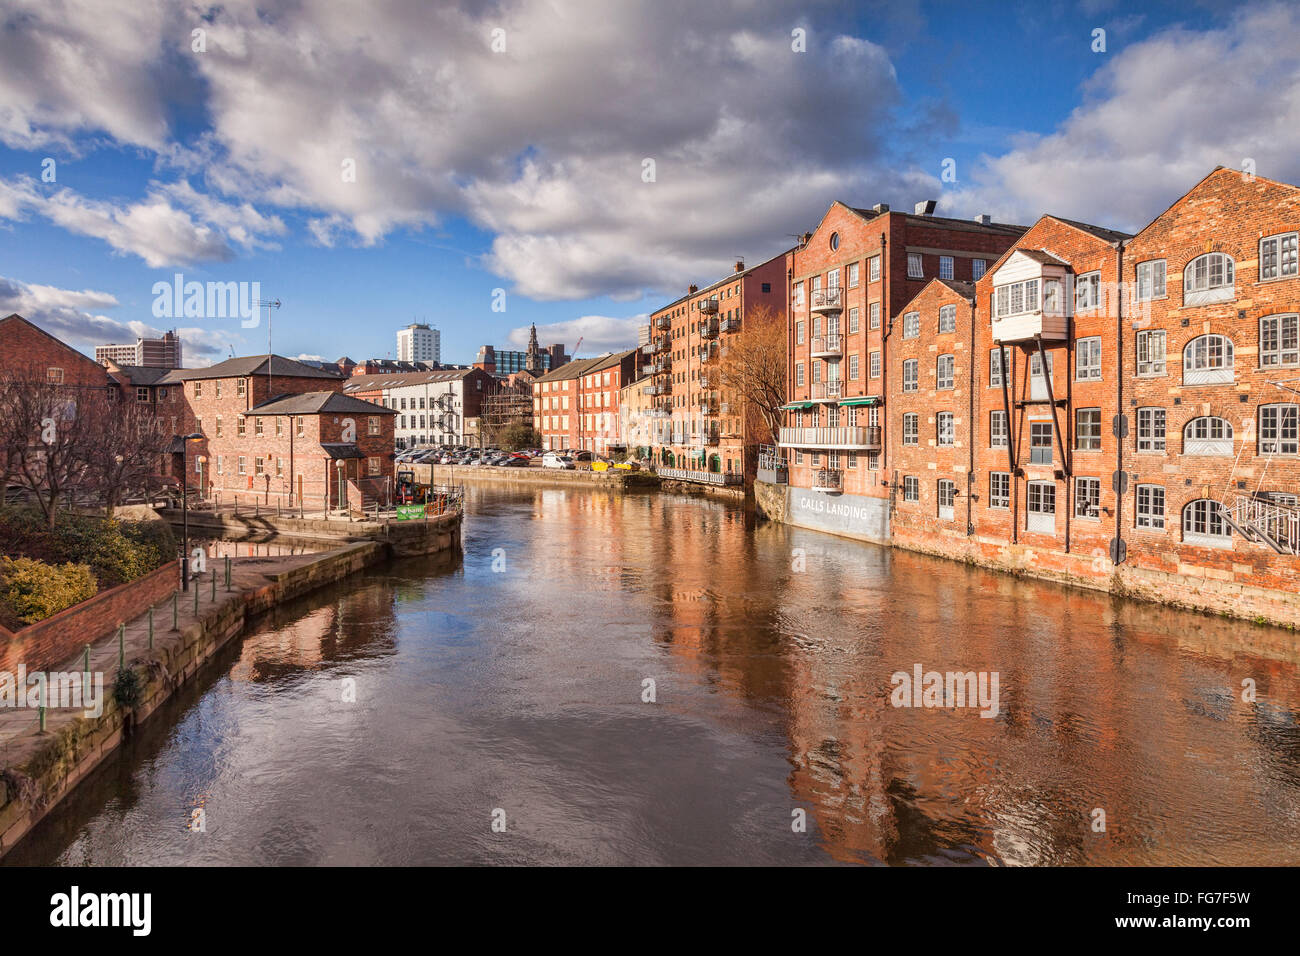 The River Aire in the centre of Leeds, West Yorkshire, England, UK, with apartment buildings on either side, some - Stock Image